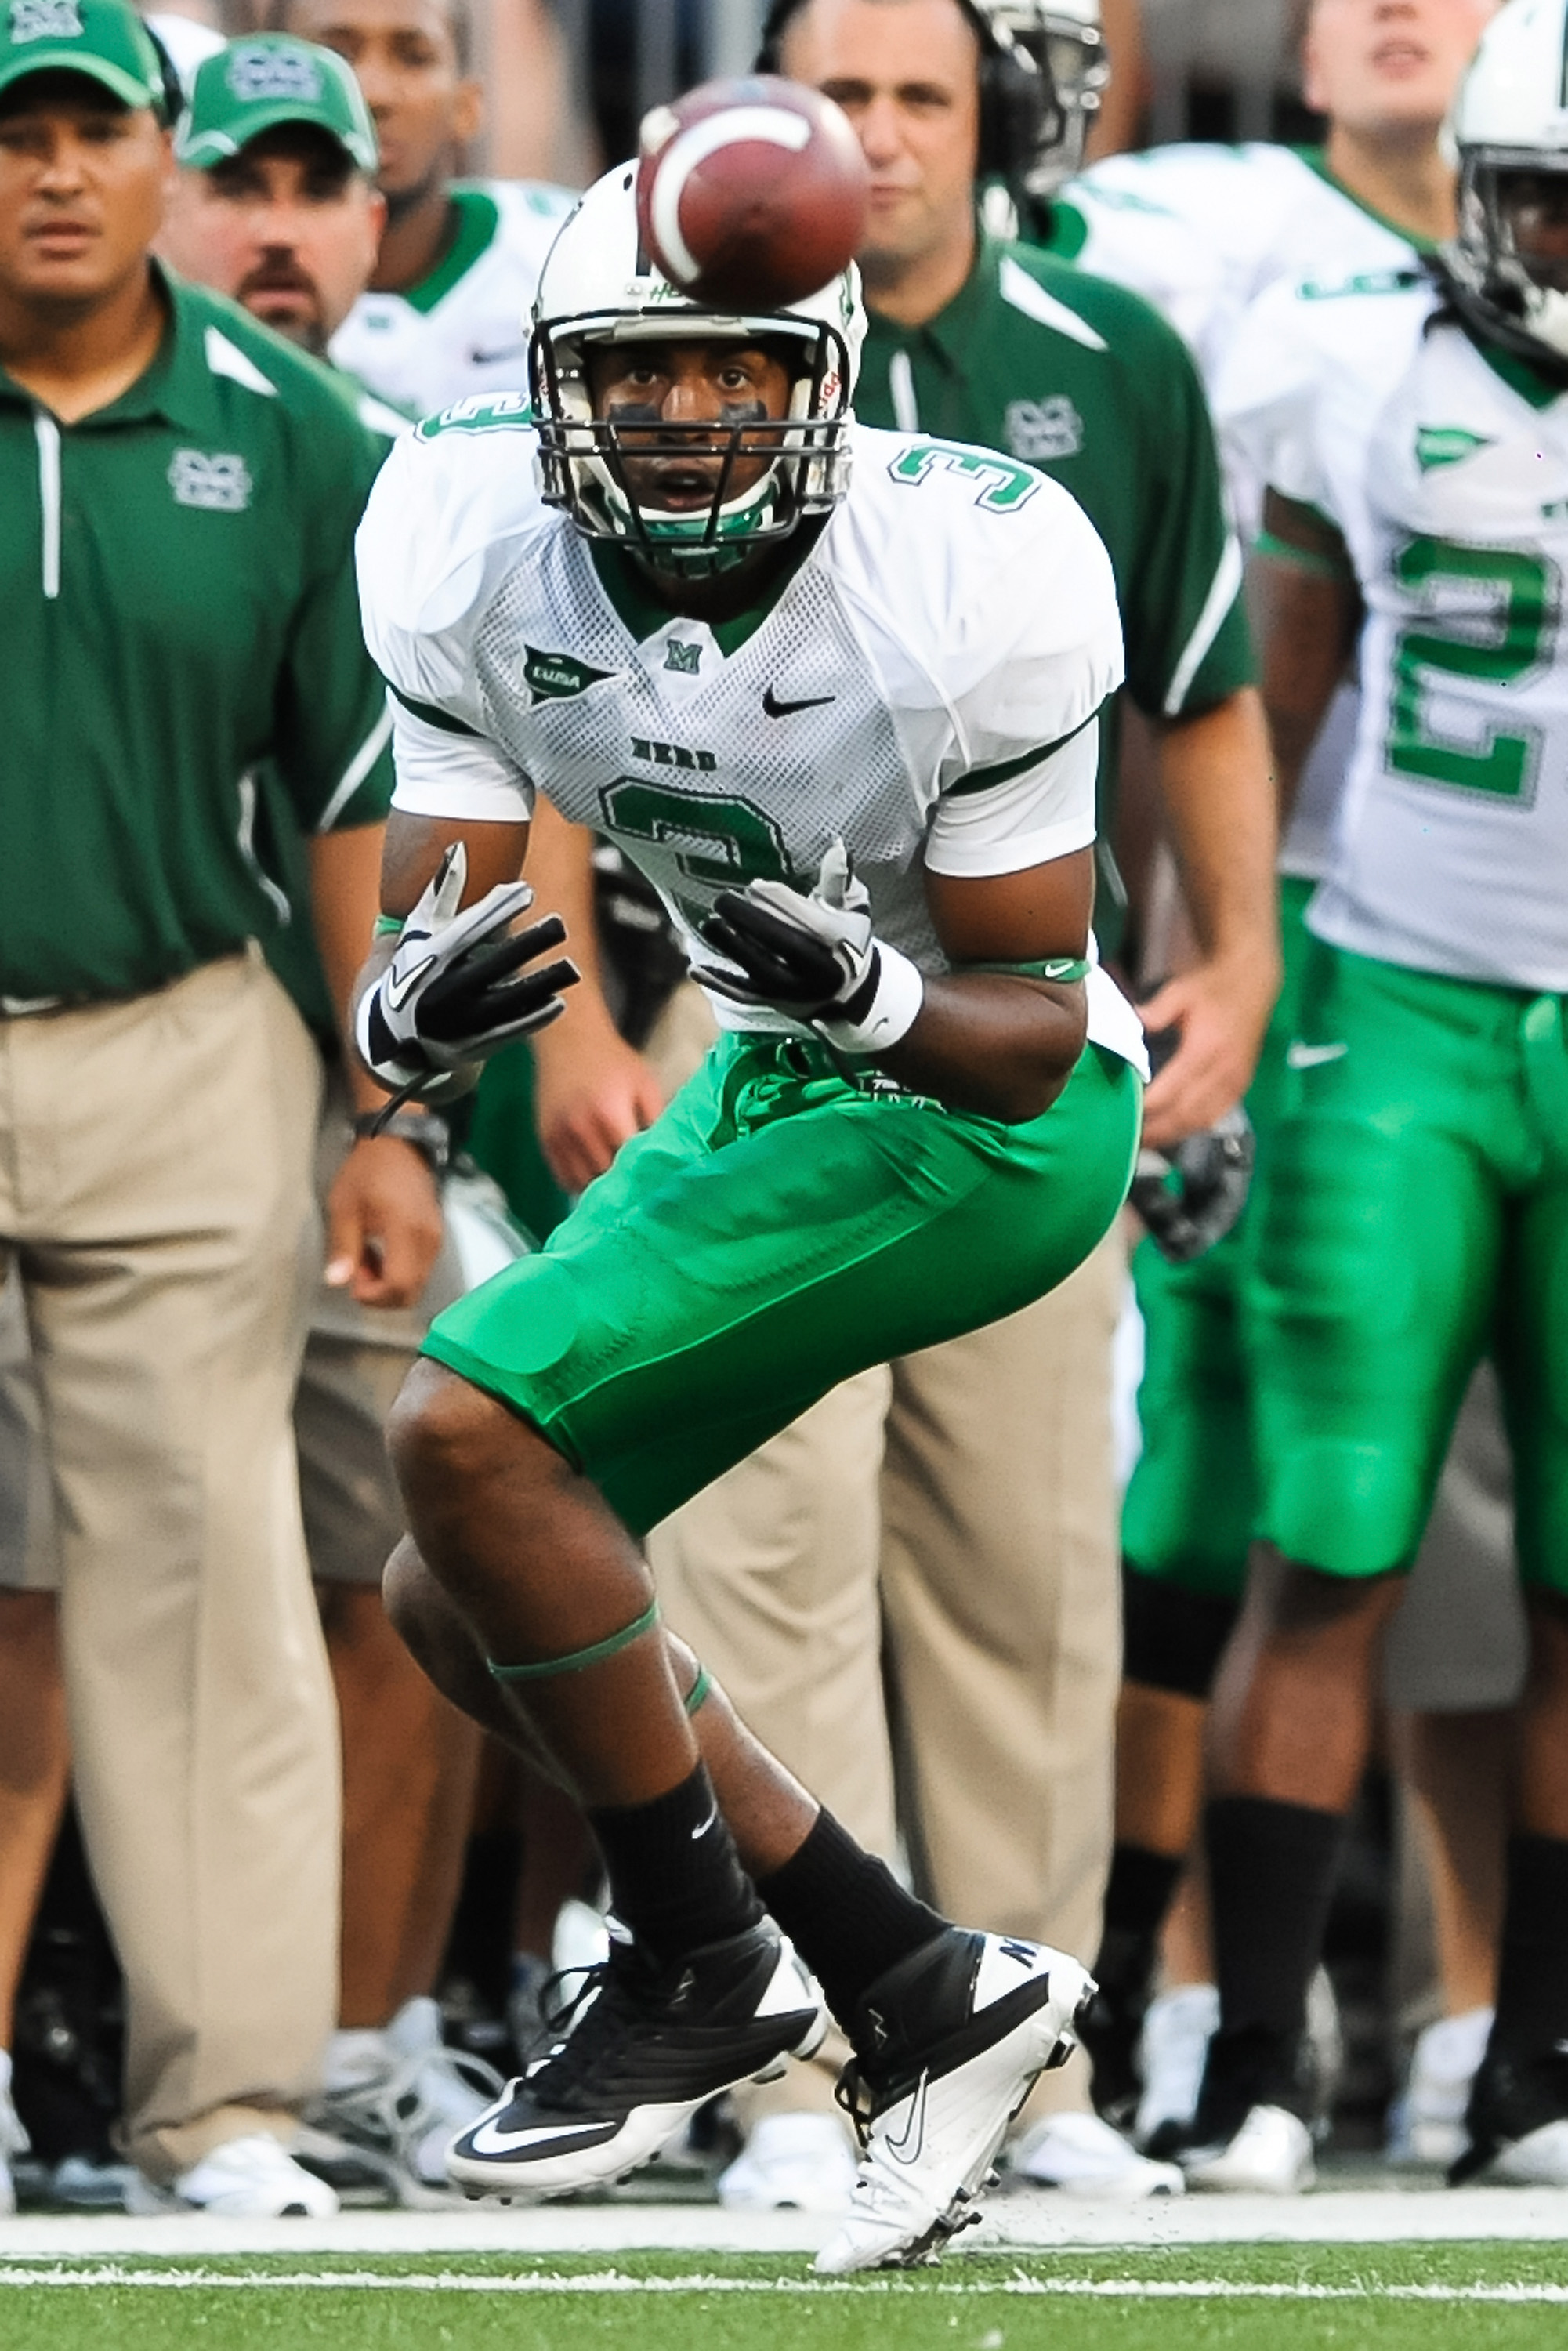 COLUMBUS, OH - SEPTEMBER 2: Aaron Dobson #3 of the Marshall Thundering Herd catches a pass against the Ohio State Buckeyes at Ohio Stadium on September 2, 2010 in Columbus, Ohio. (Photo by Jamie Sabau/Getty Images)